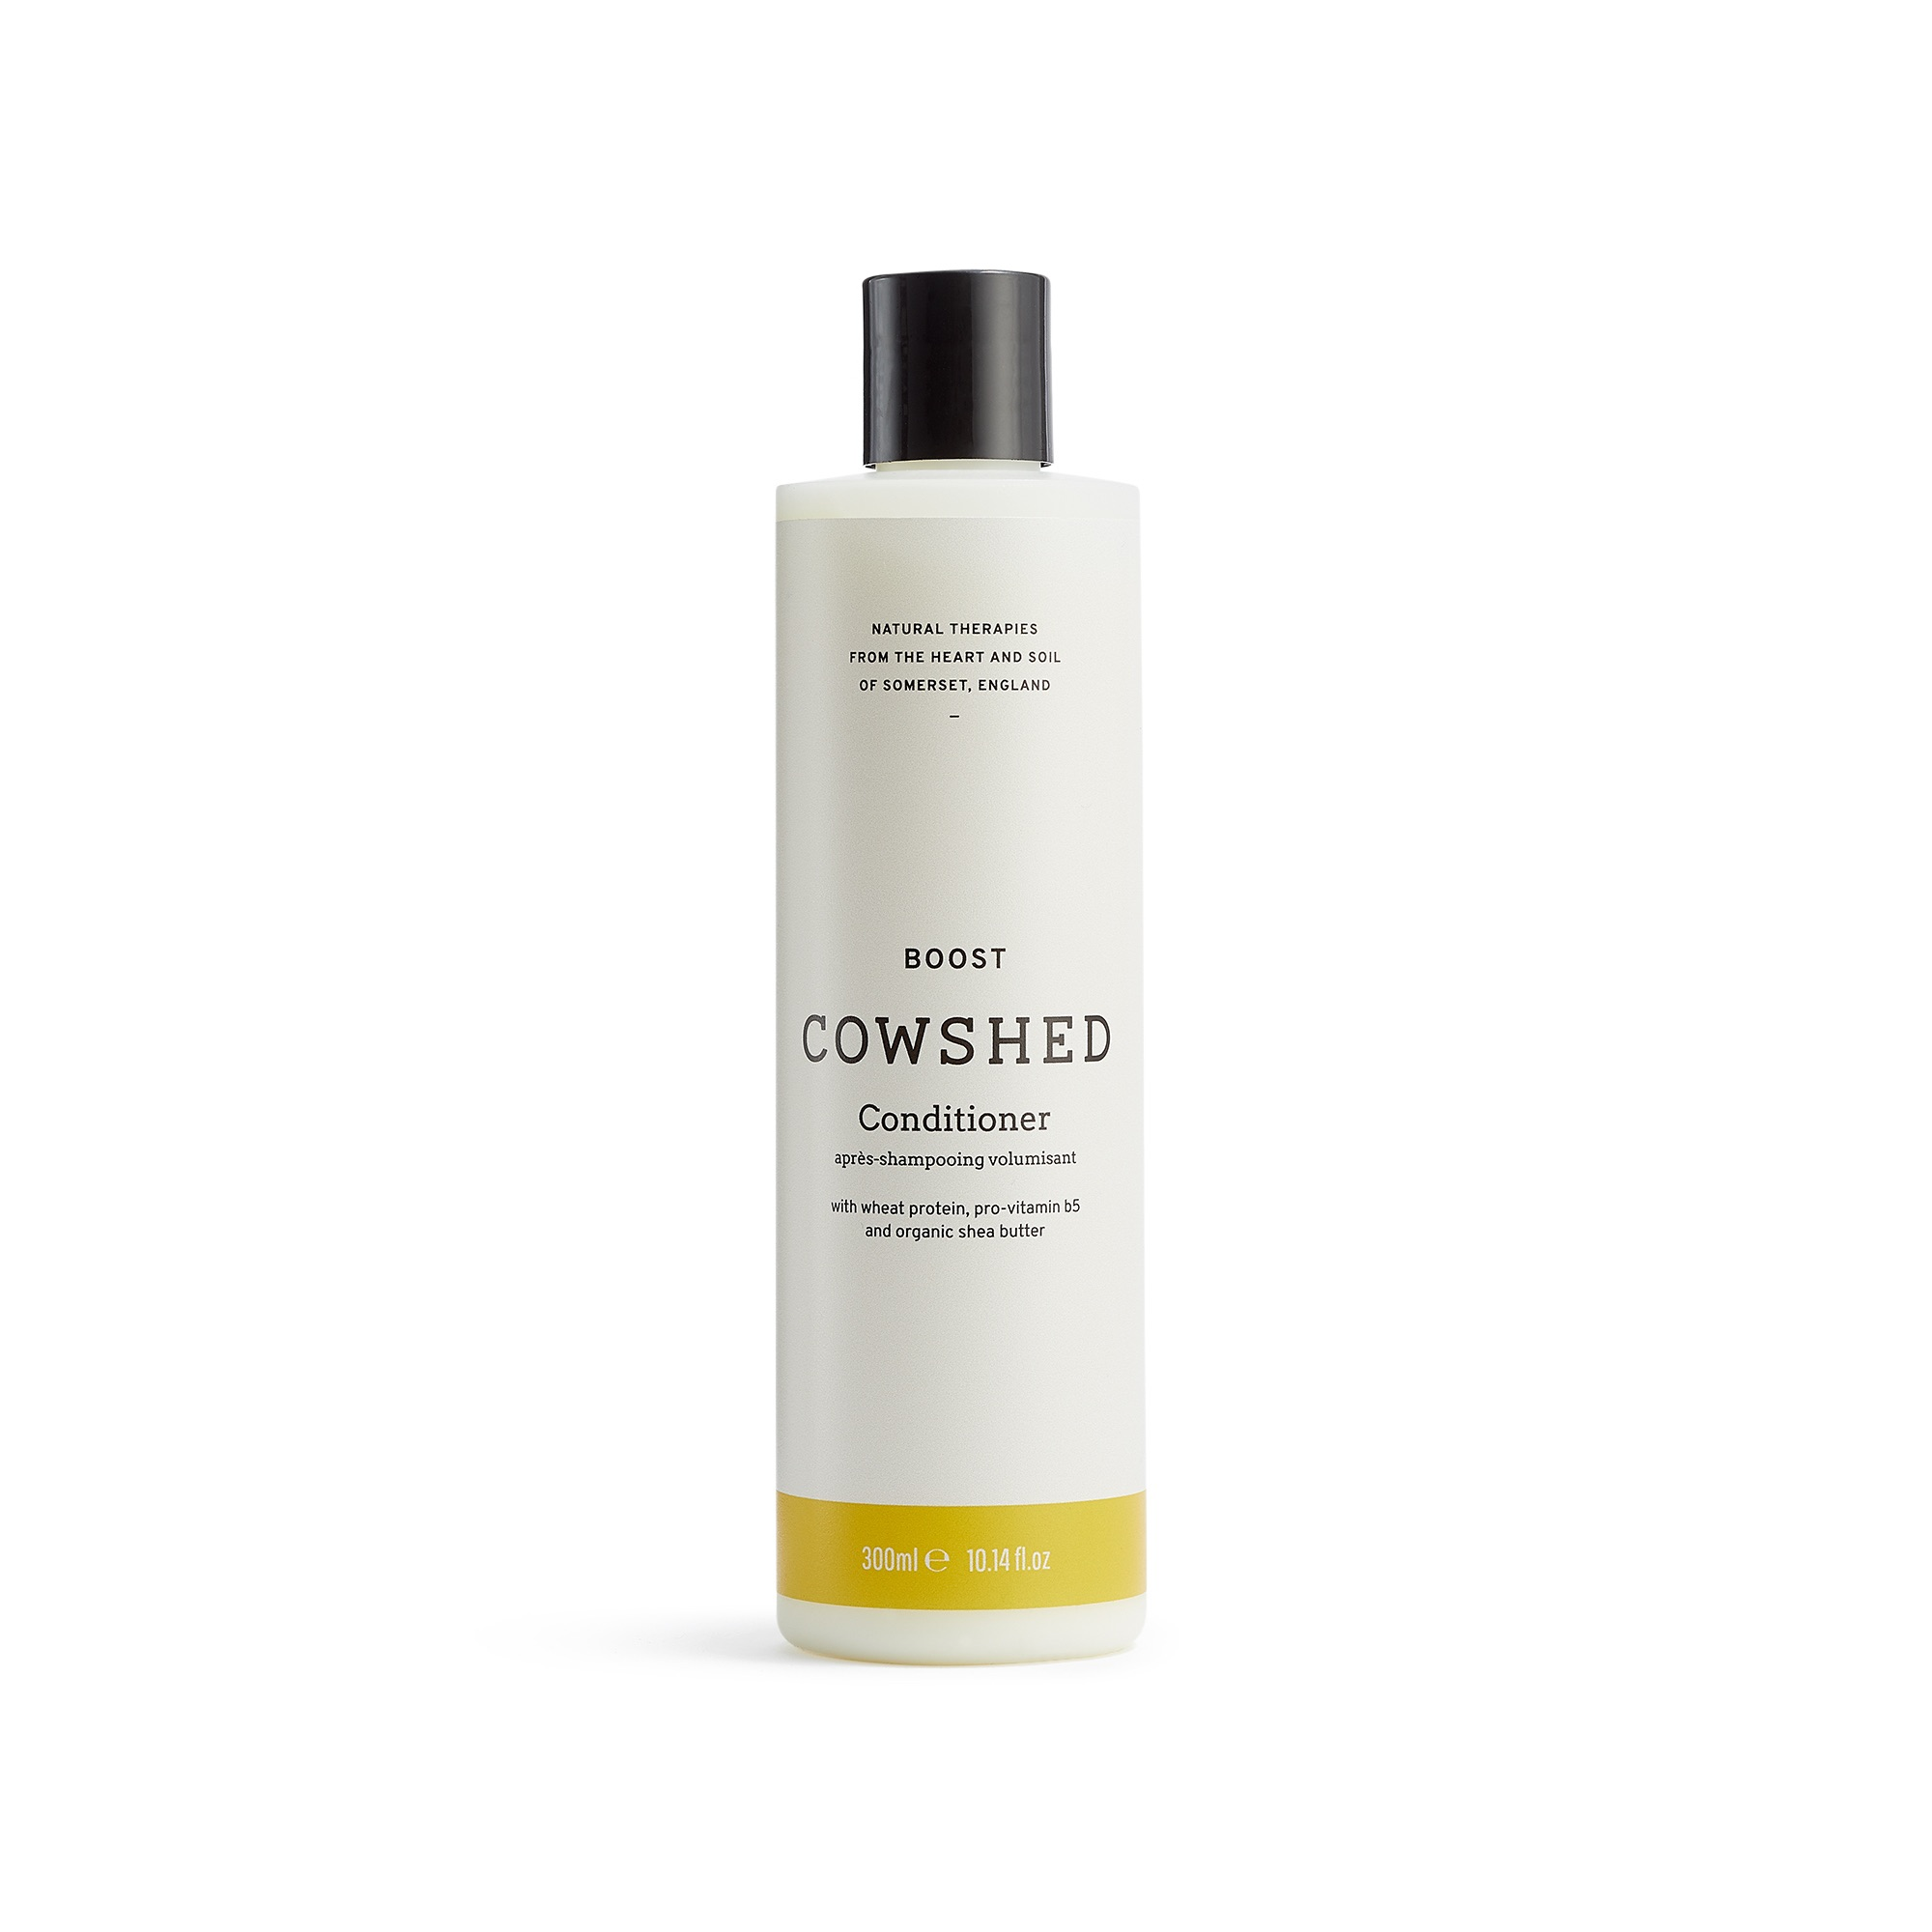 Cowshed BOOST Conditioner (Grumpy Cow Volumising Conditioner) 10.5oz (300ml)